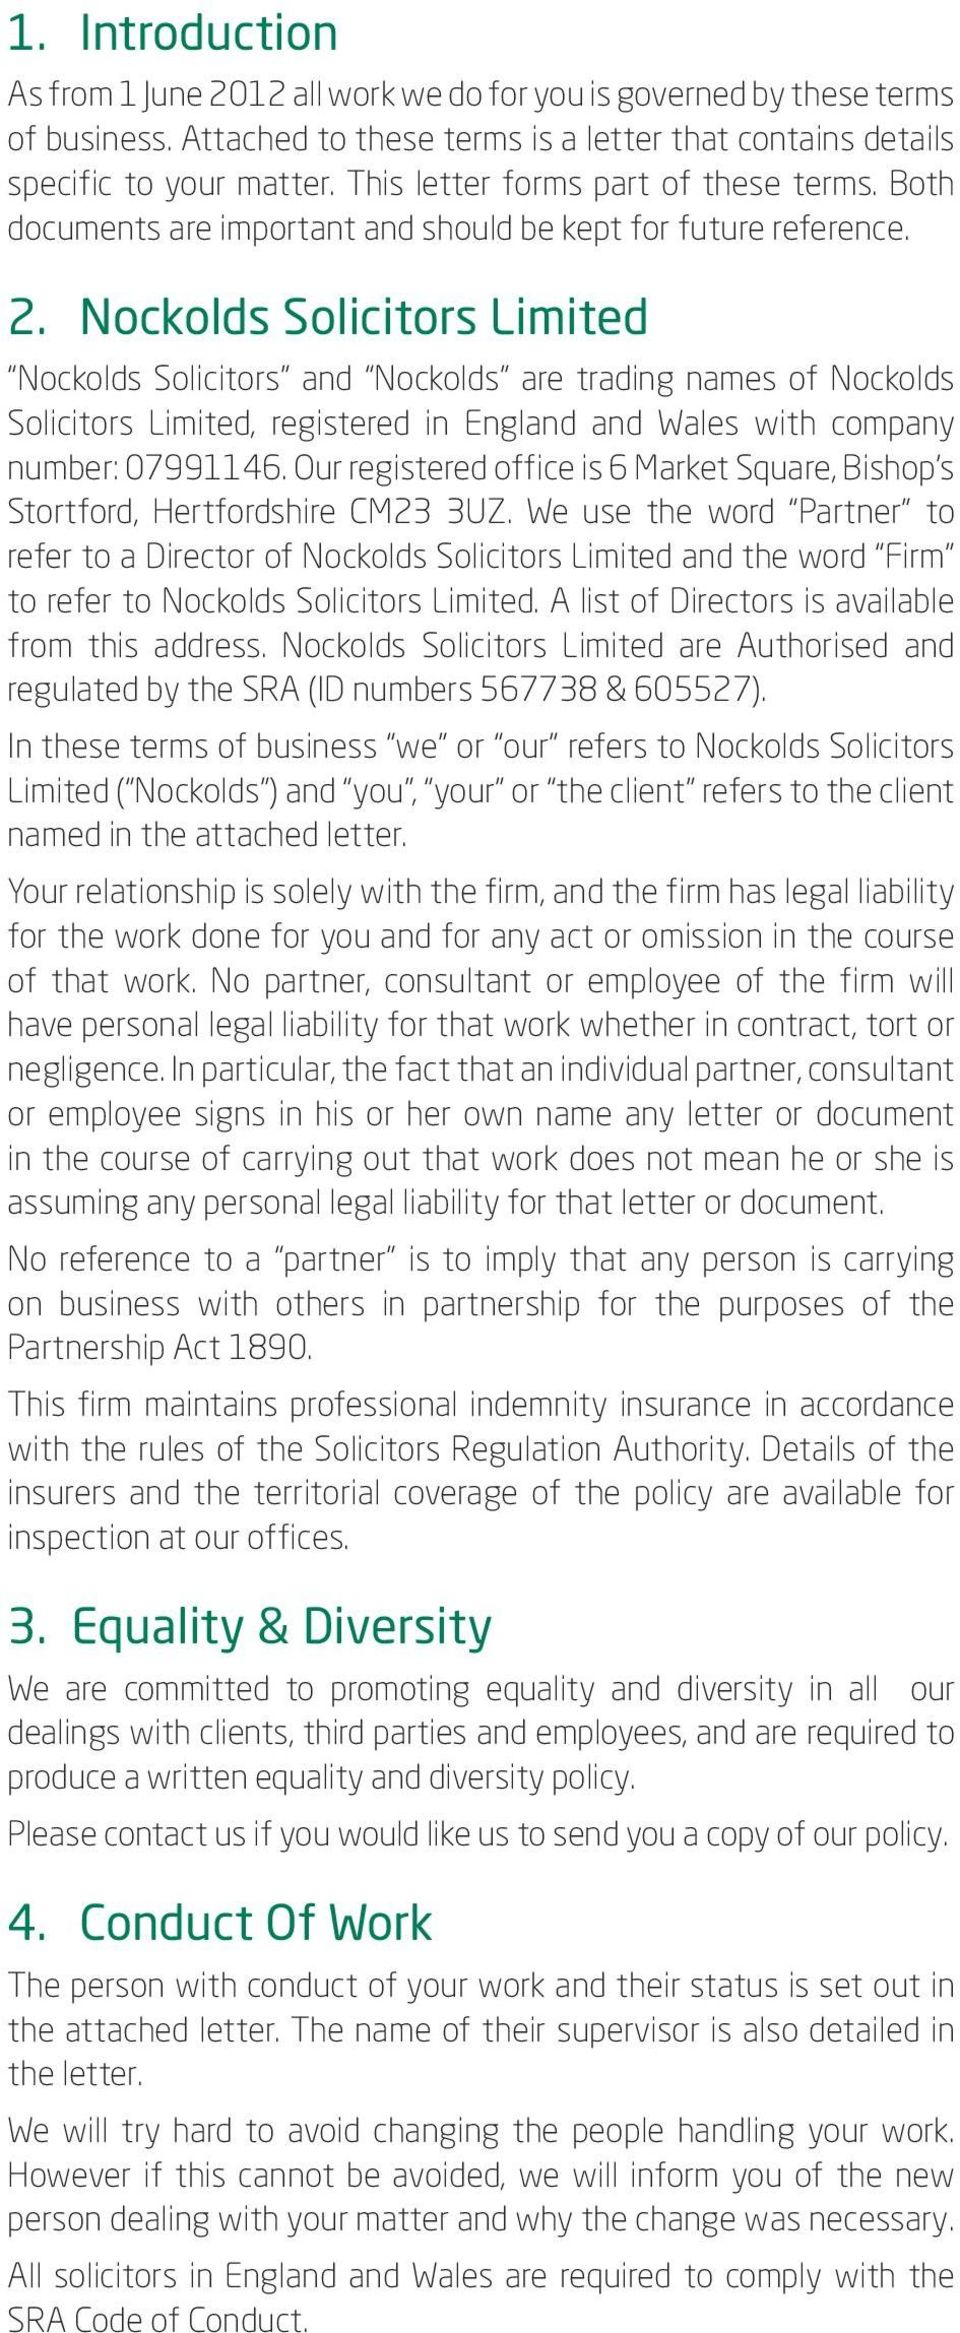 Nockolds Solicitors Limited Nockolds Solicitors and Nockolds are trading names of Nockolds Solicitors Limited, registered in England and Wales with company number: 07991146.